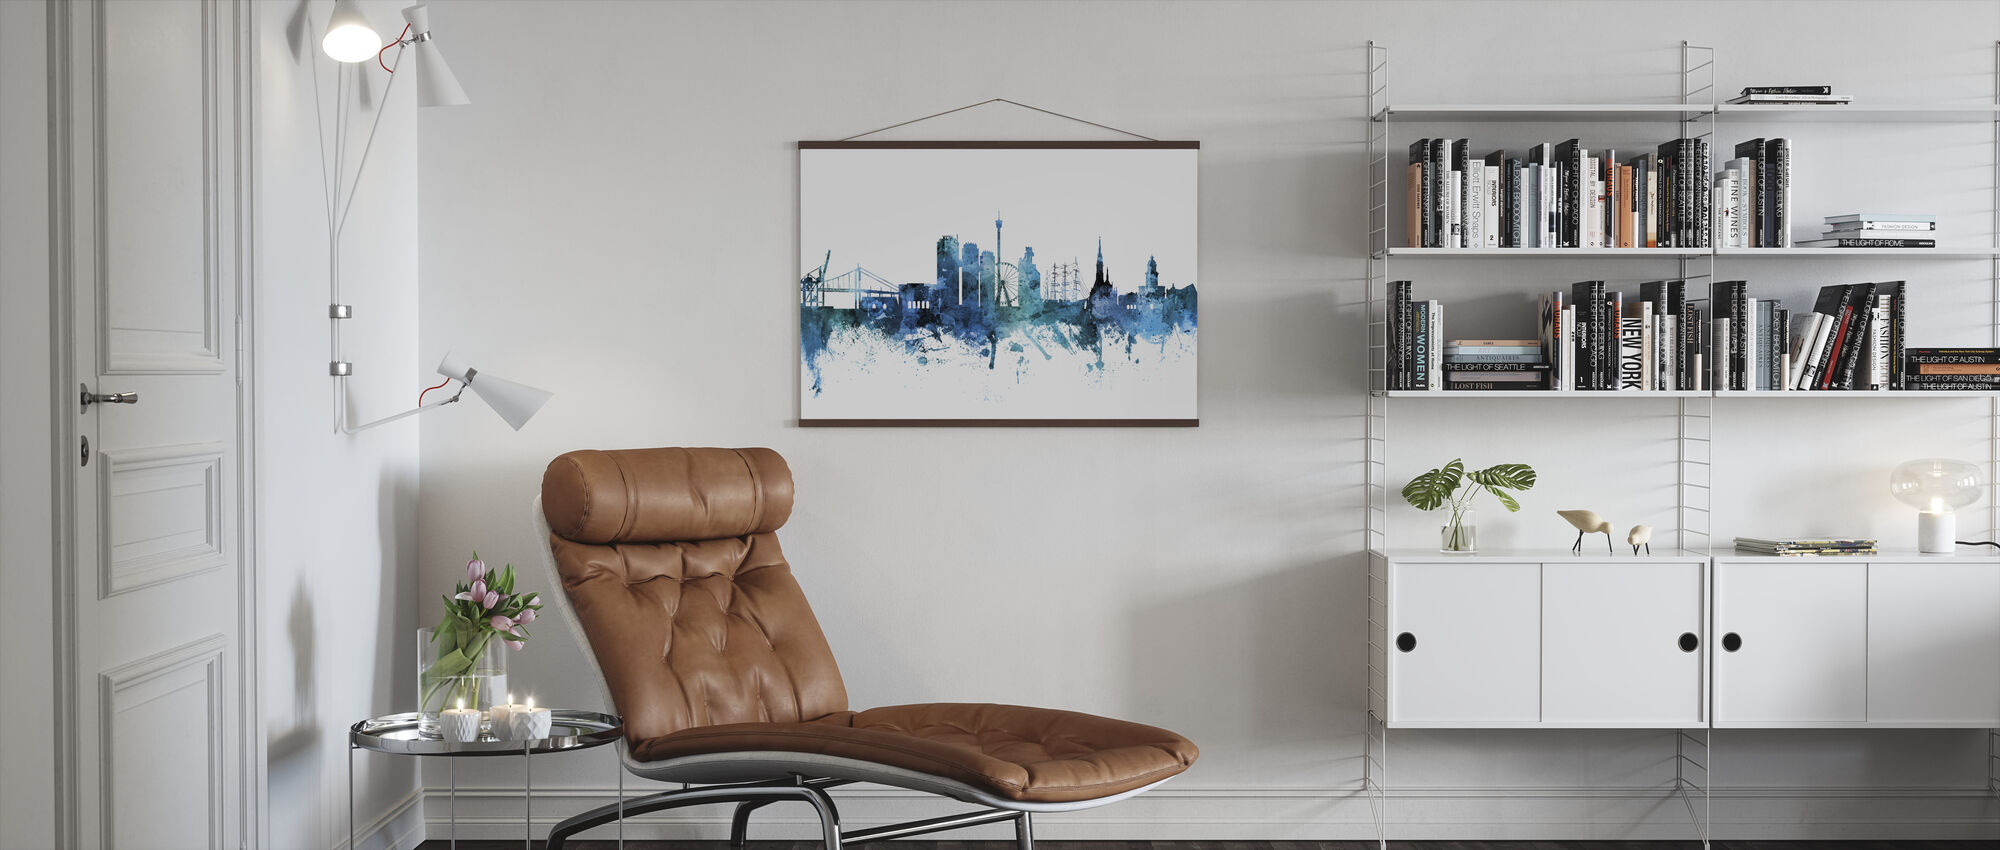 Gothenburg Sweden Skyline - Poster - Living Room